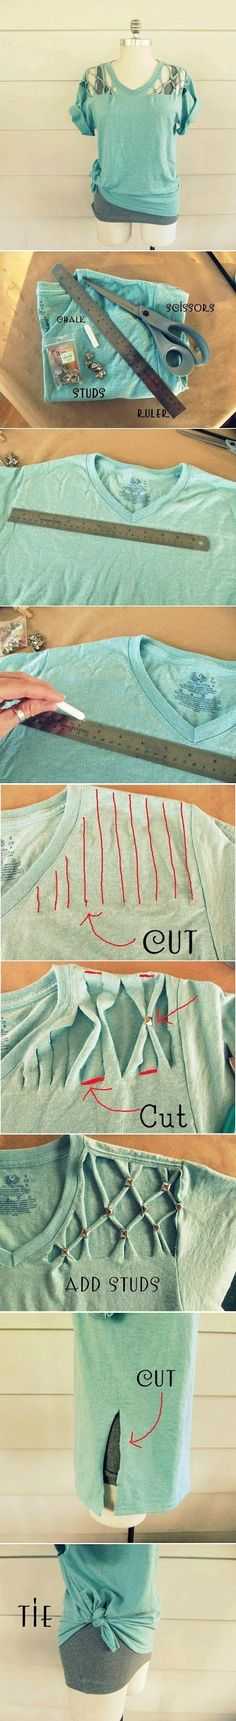 How To Make a Studded T-Shirt - How To Make a Cool Studded T-ShirtYou will need :ChalkSclssorsStudsRulerYou Should also see :Make a Beautiful Embellished SweaterMake a Fan Curtain by papersMake an Ottoman By Recycling Plastic BottleBook :